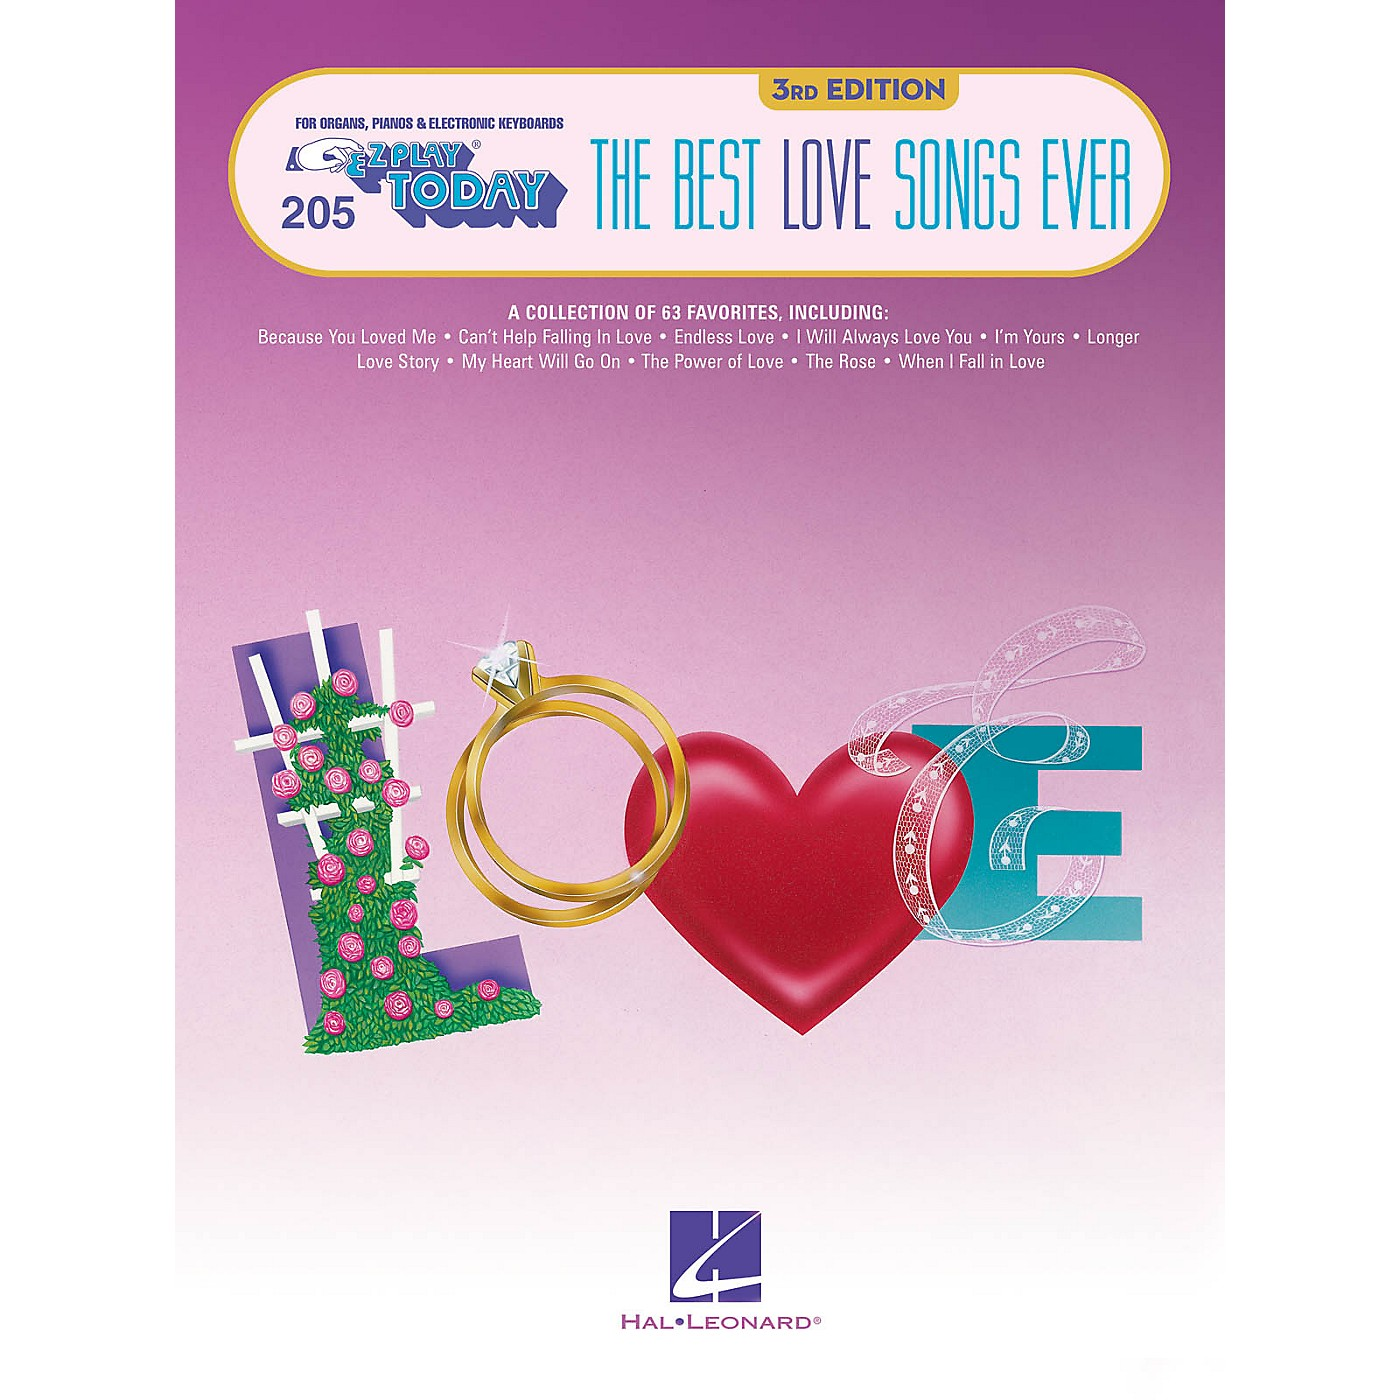 Hal Leonard The Best Love Songs Ever - 3rd Edition E-Z Play Today Volume 205 thumbnail